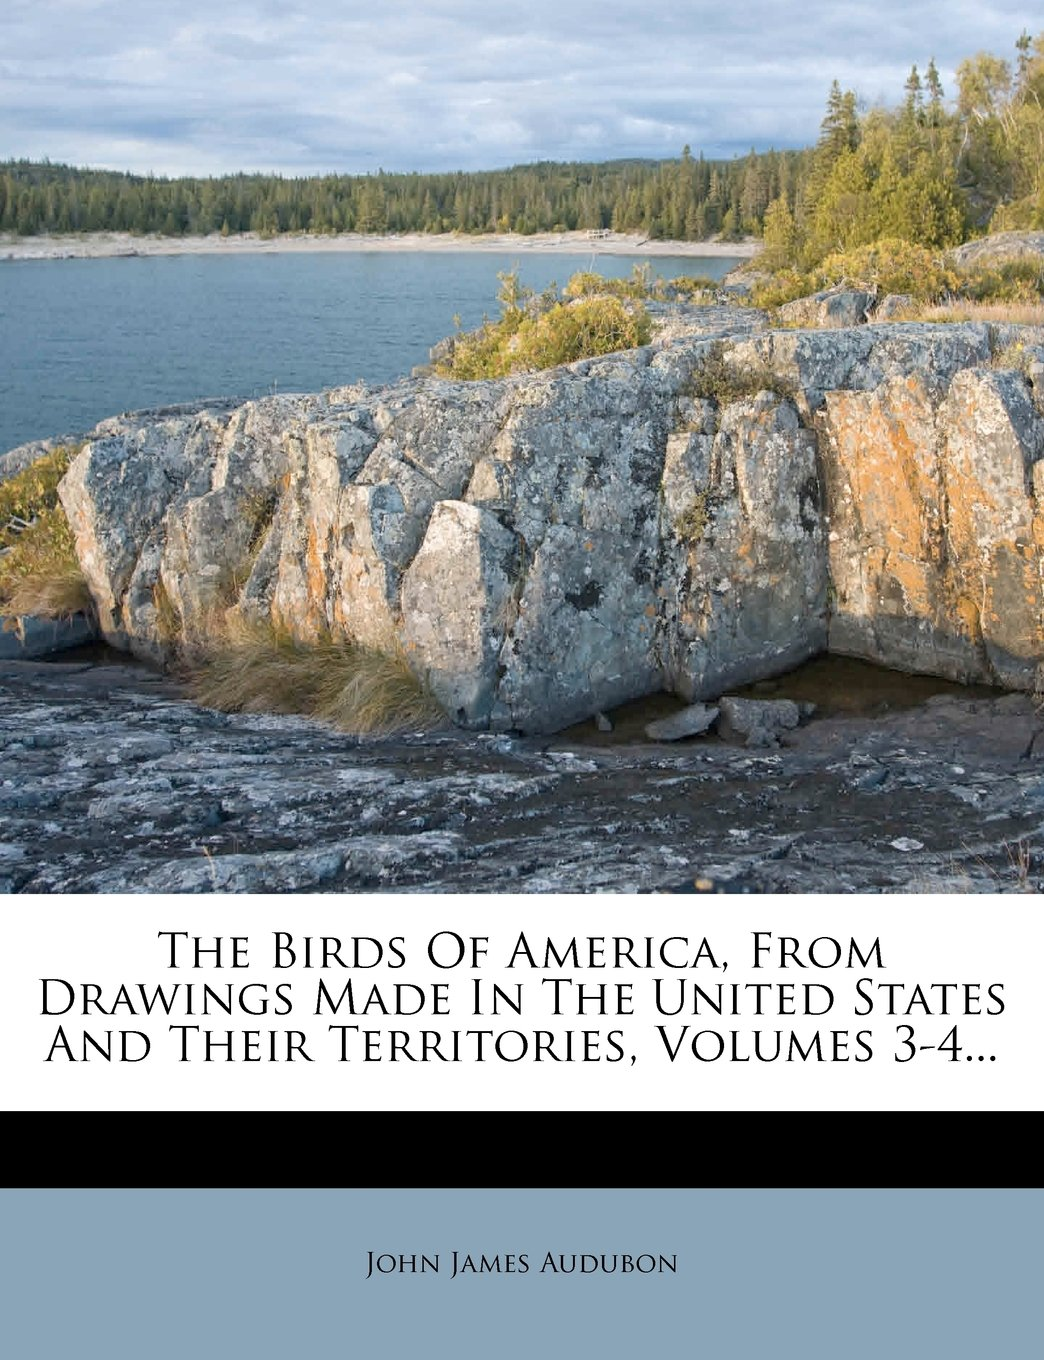 The Birds Of America, From Drawings Made In The United States And Their Territories, Volumes 3-4... pdf epub